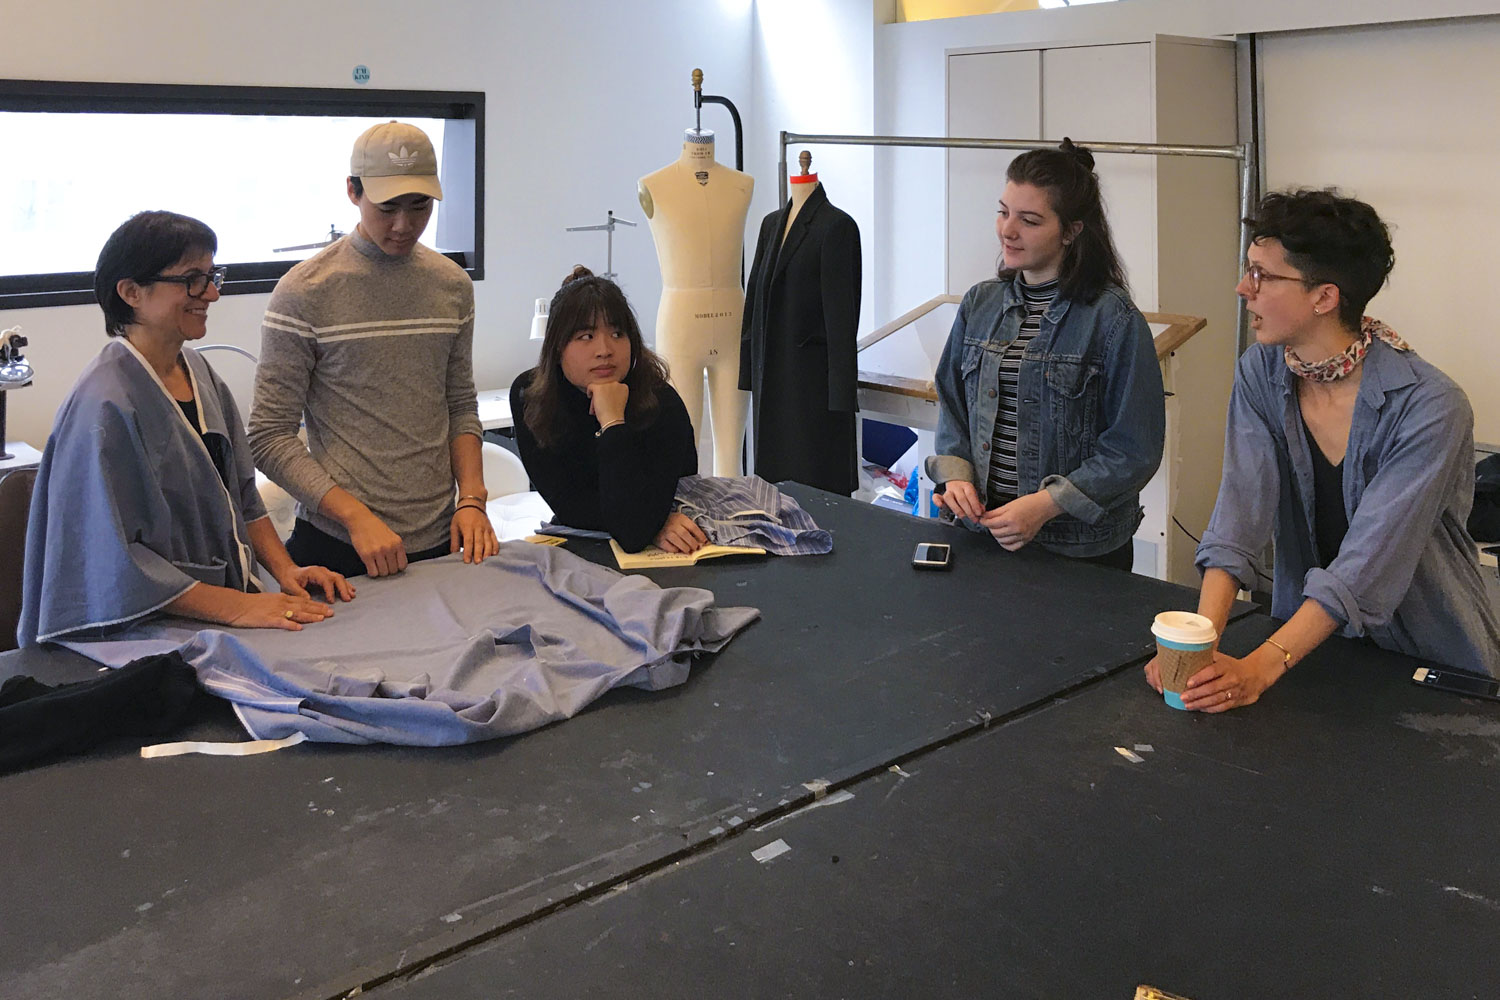 Care+Wear partnered with the Parsons School of Design to create the gowns. Here, teacher Brittany Dickinson, right, and her students talk with patient Joan DeCollibus, left, about a prototype gown.